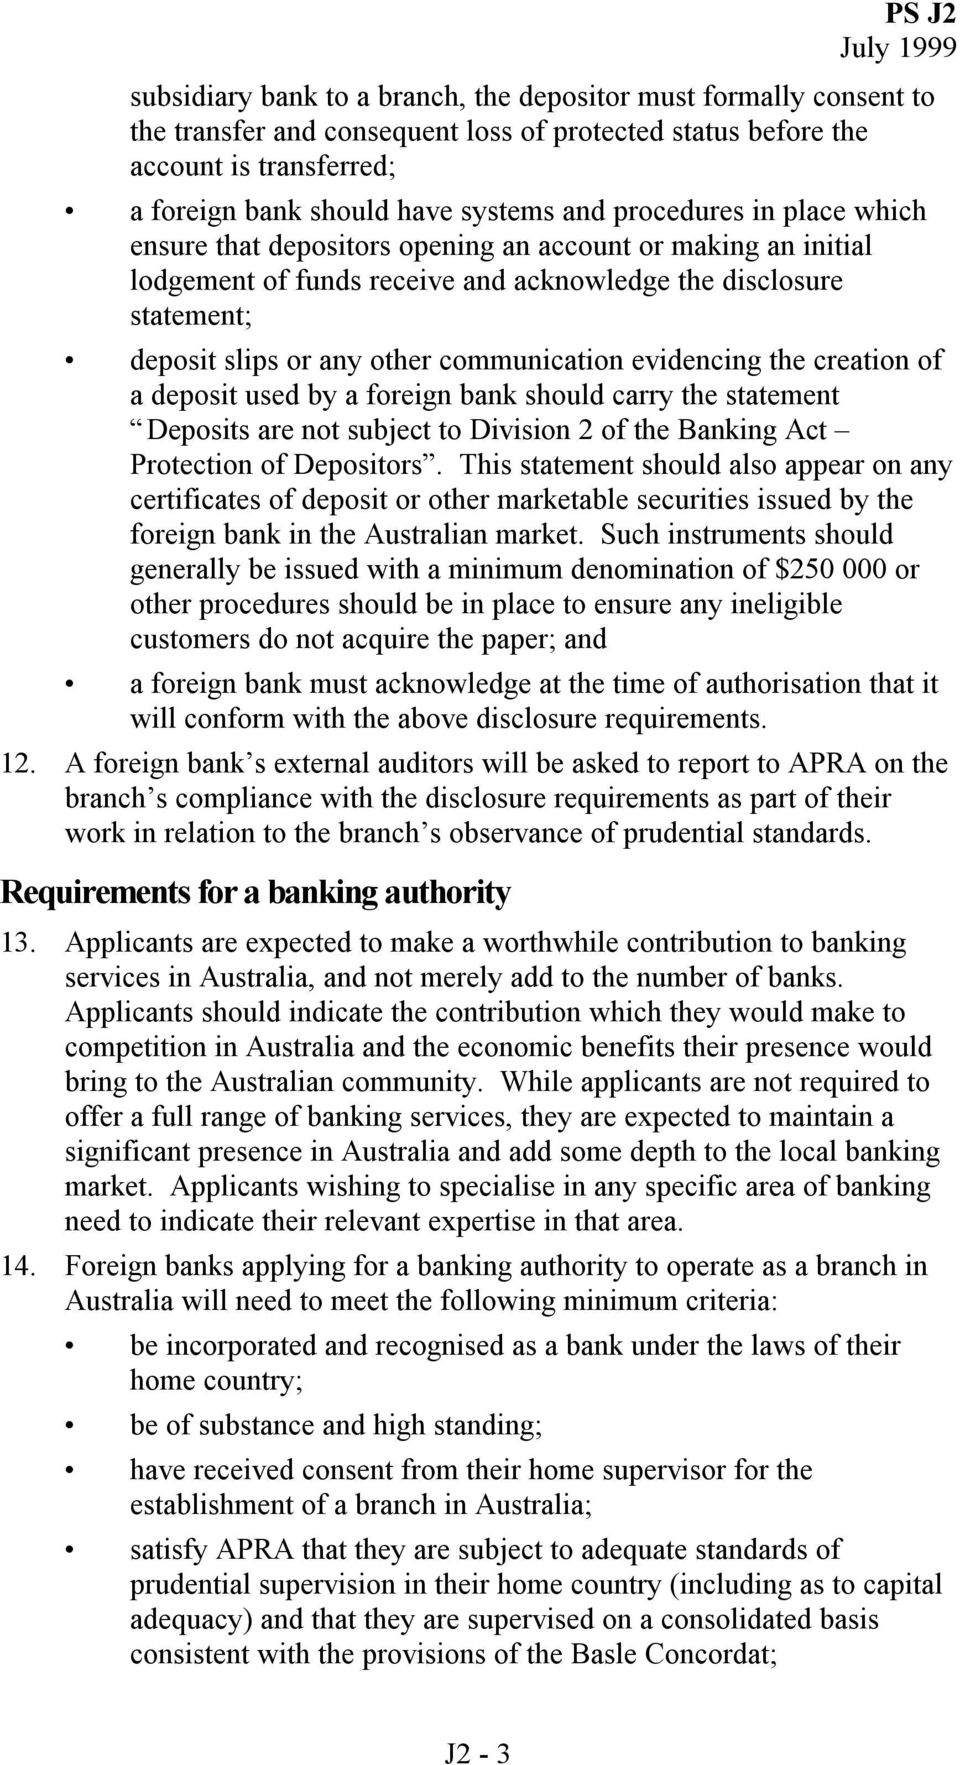 evidencing the creation of a deposit used by a foreign bank should carry the statement Deposits are not subject to Division 2 of the Banking Act Protection of Depositors.